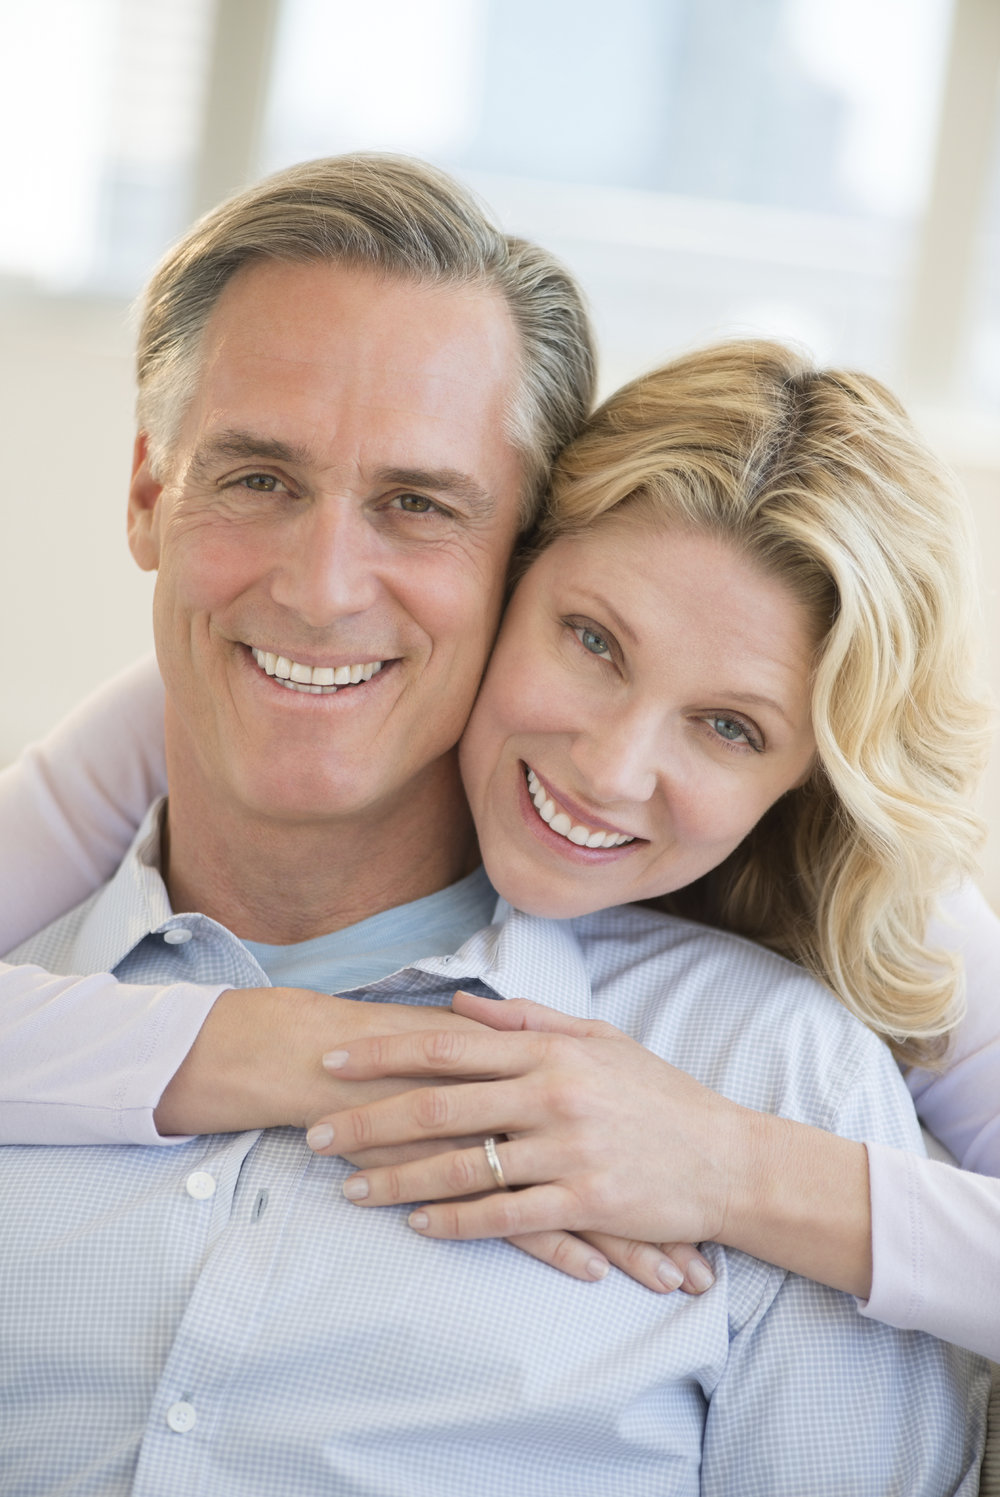 Adult teeth must be taken care of to ensure long oral health.